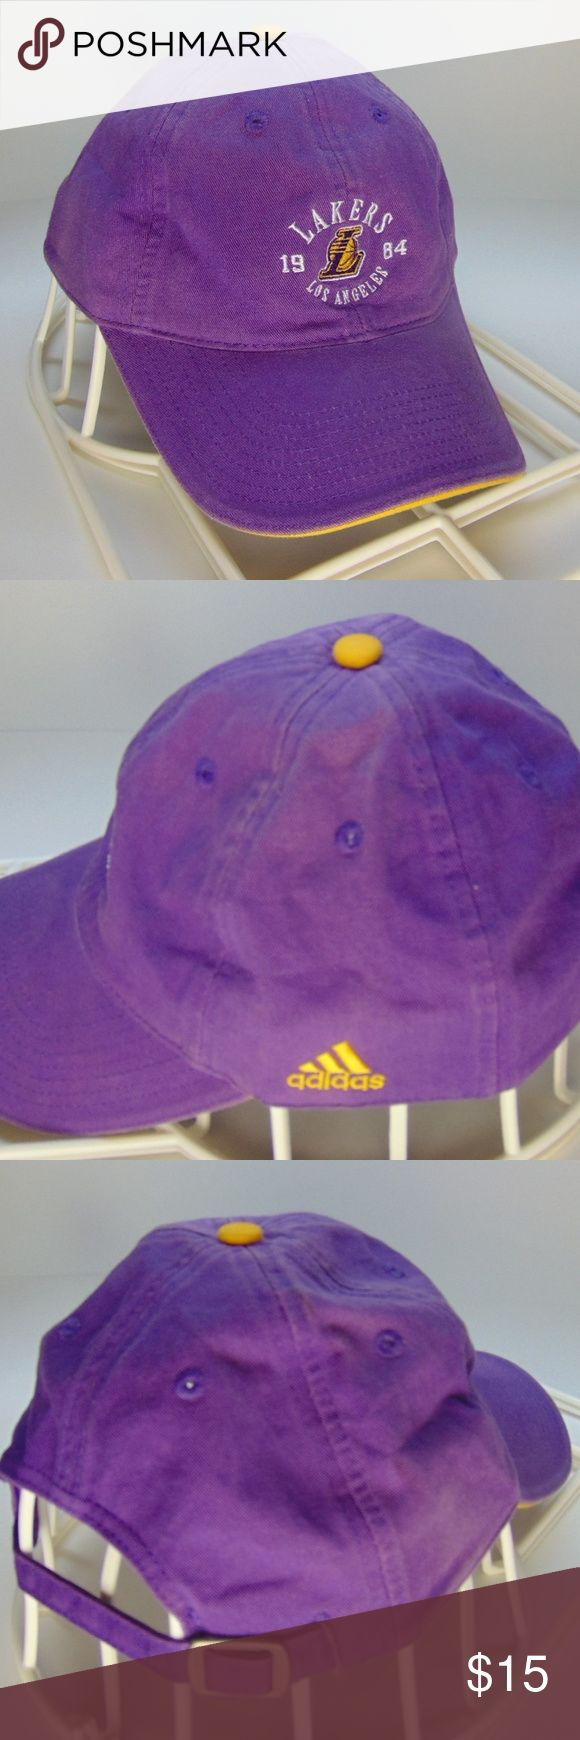 Los Angeles Lakers Cap / Hat New Adidas LA Lakers one size fits all cap with rear size adjustment Adidas Accessories Hats